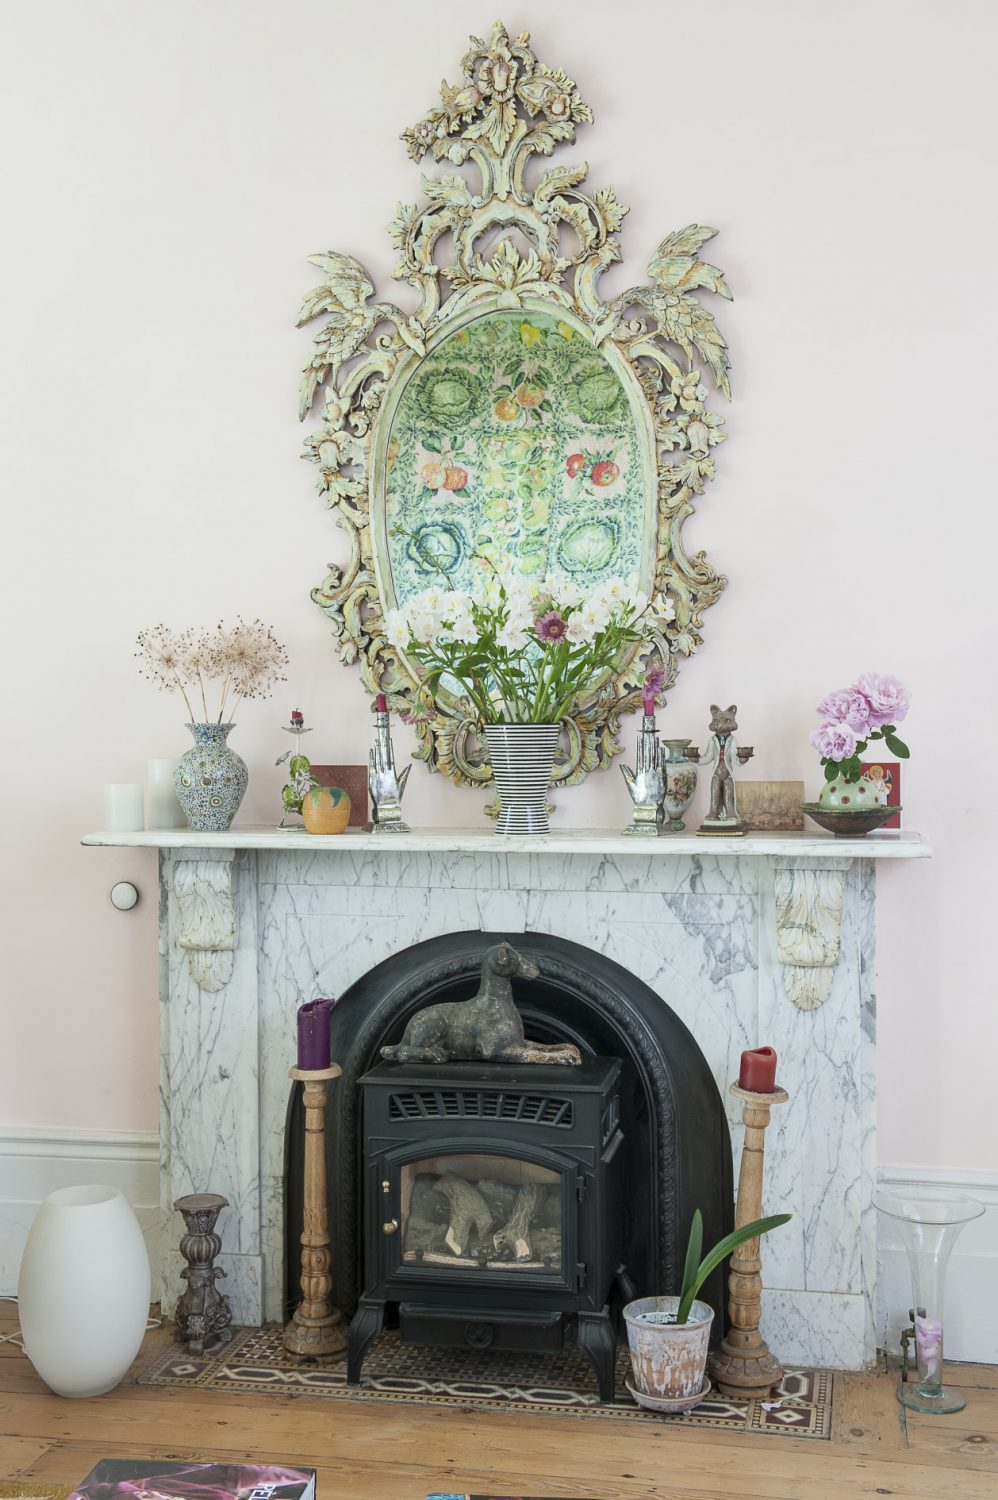 Kaffe's 'Cabbages and Apples' needlepoint is perfectly reflected in an ornate gilded mirror above the white marble fireplace